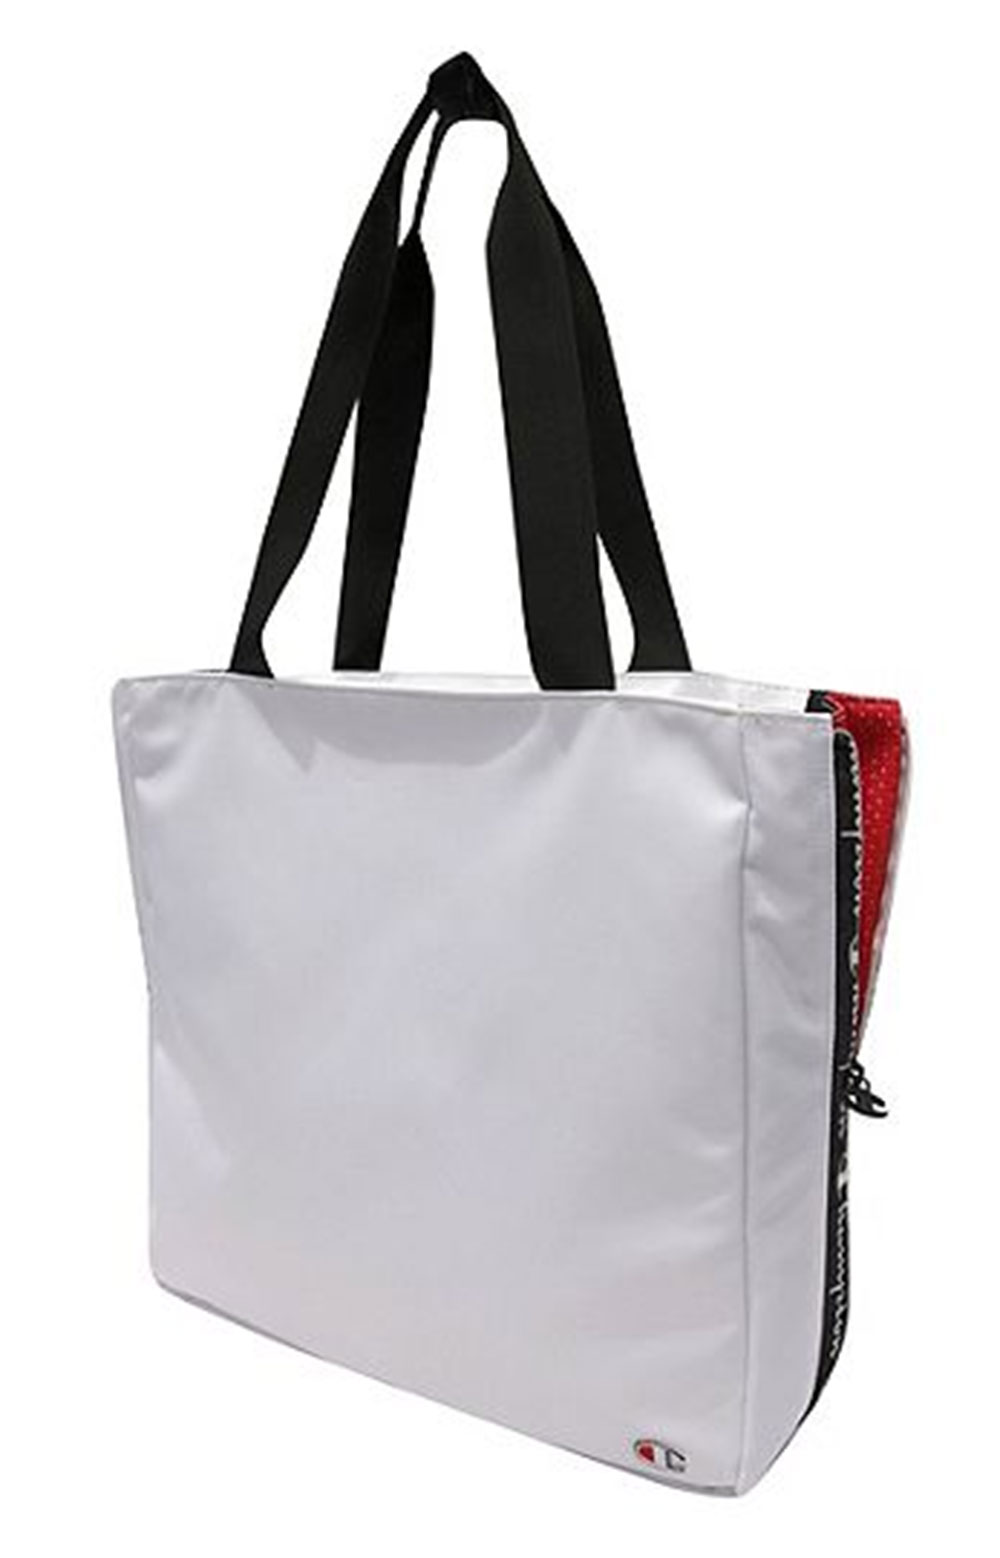 Expander Tote Bag - White